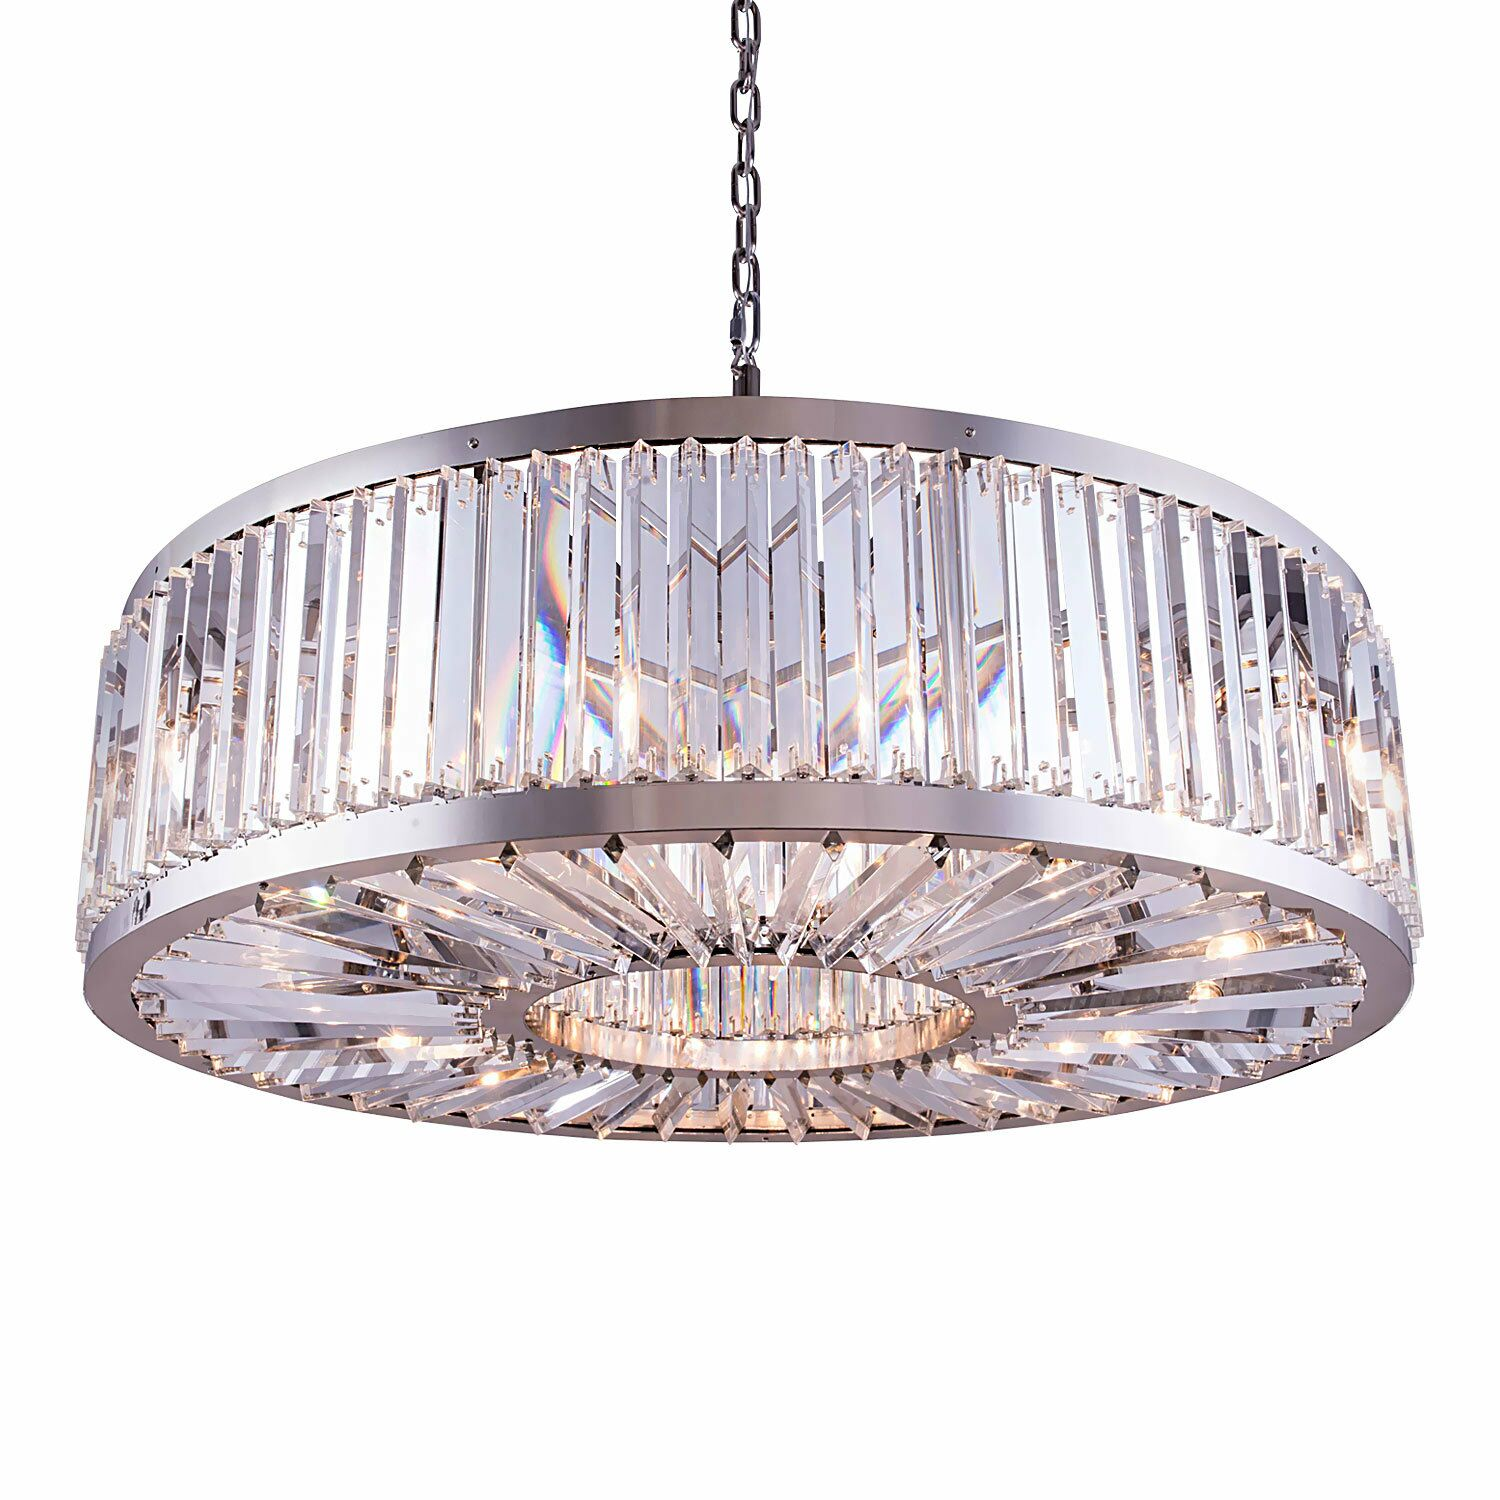 Herkimer 10-Light Drum Chandelier Finish / Shade Color: Polished Nickel/Clear, Size: 75.5